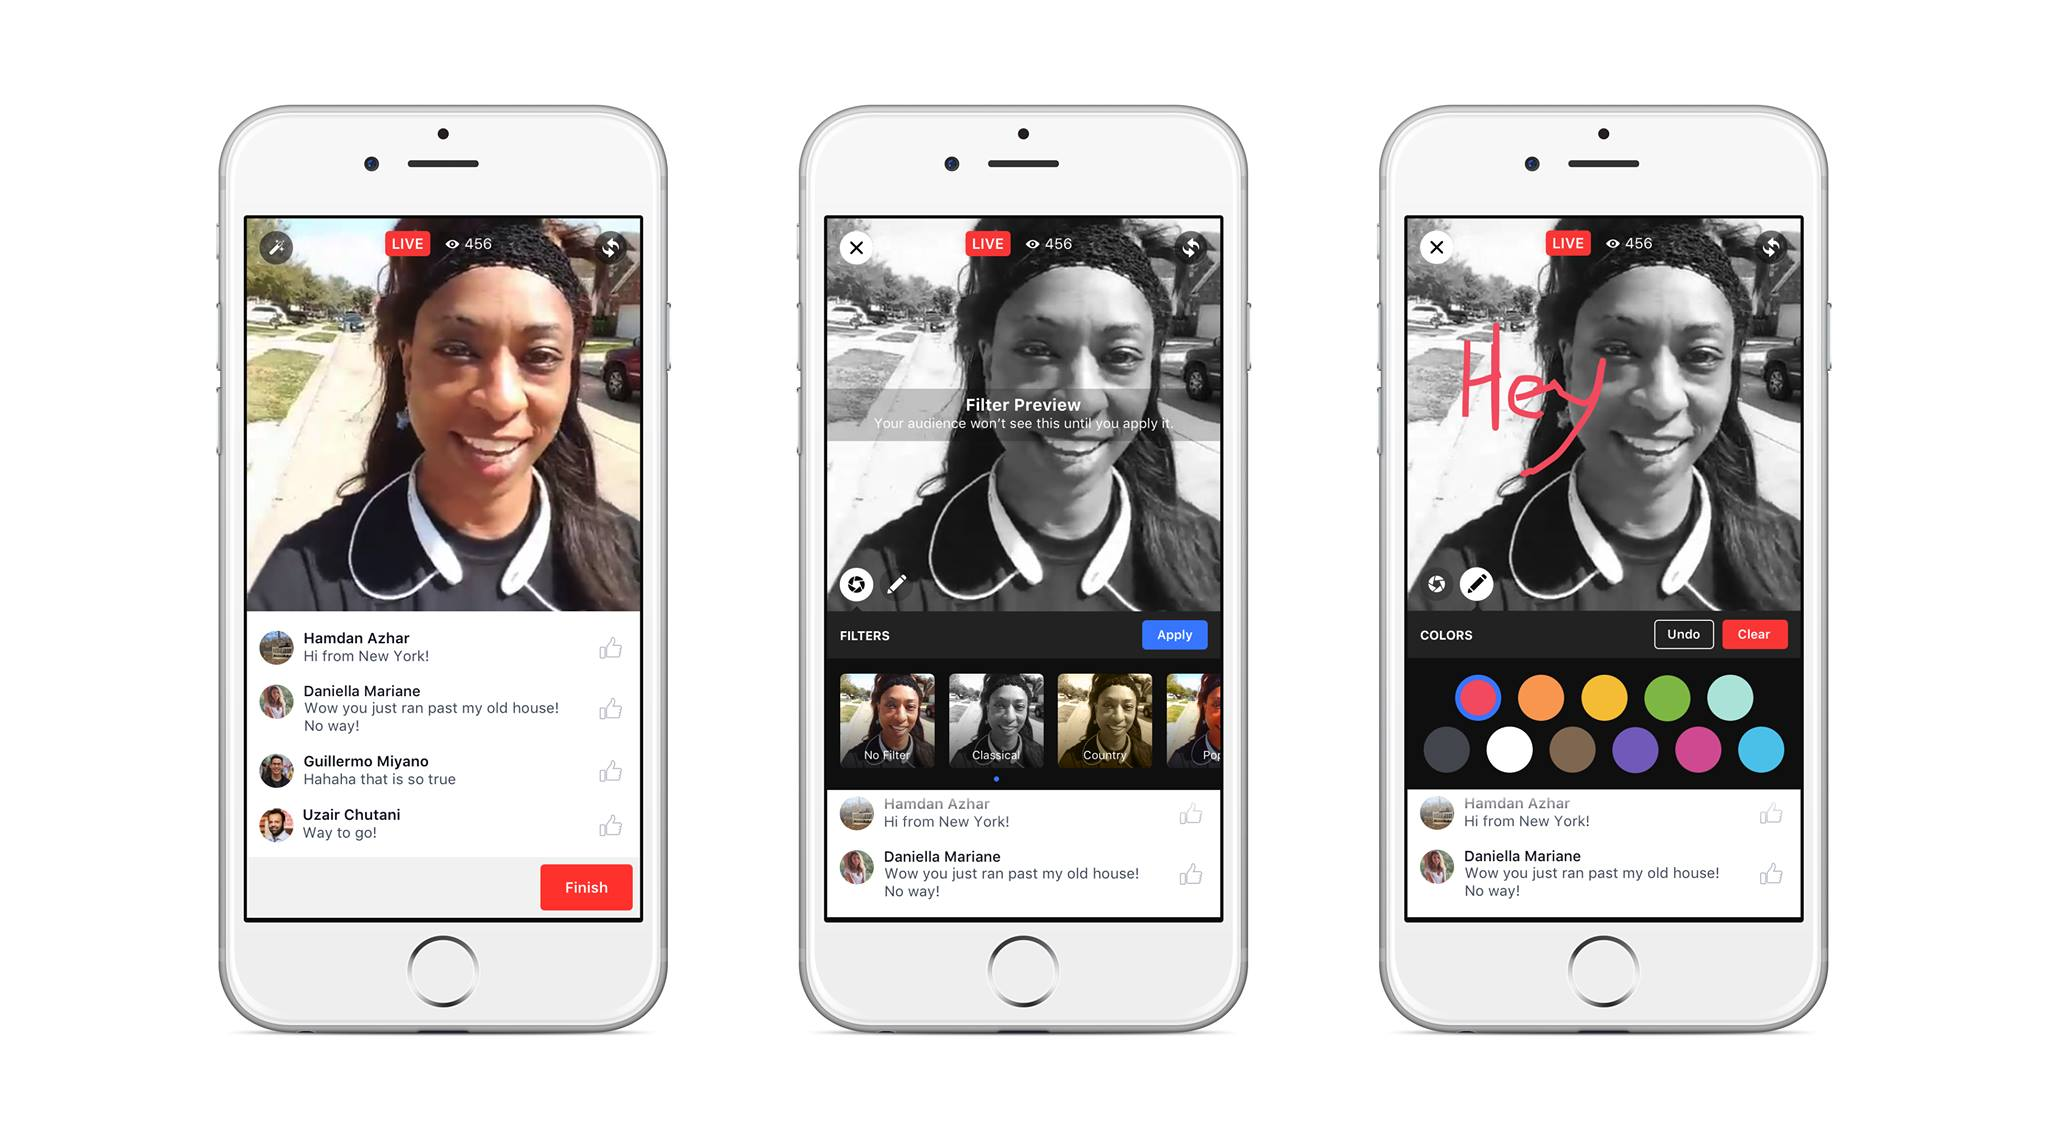 Facebook's creative tools: filters and doodling while livestreaming